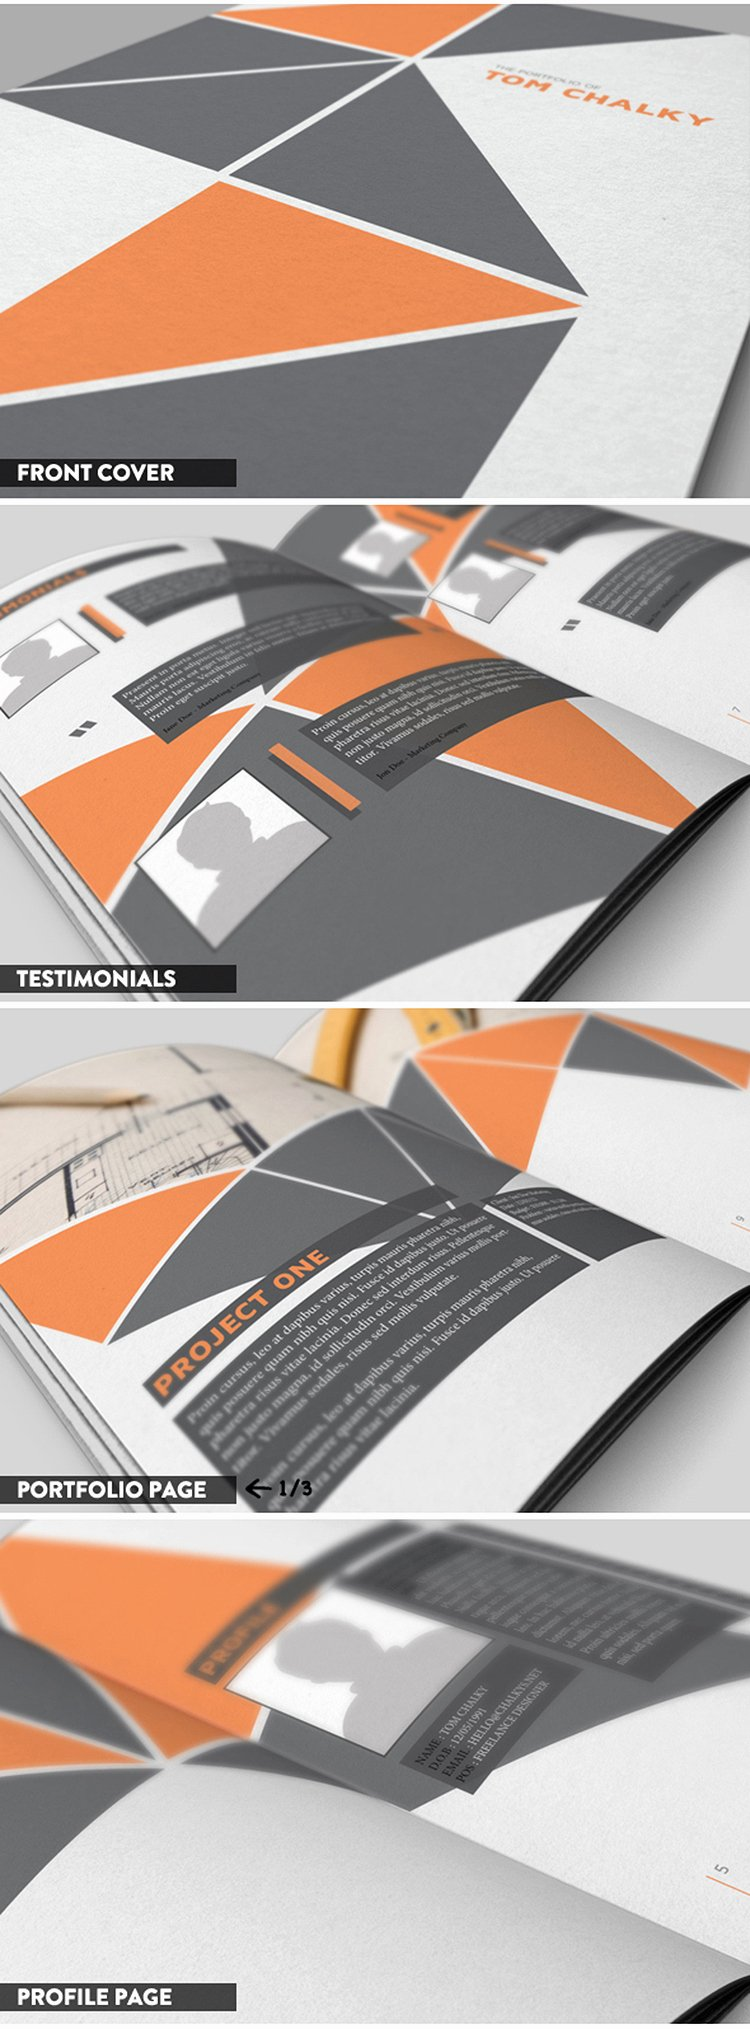 Architecture Portfolio Template Indesign Awesome Free 16 Page Case Study Portfolio Booklet Download